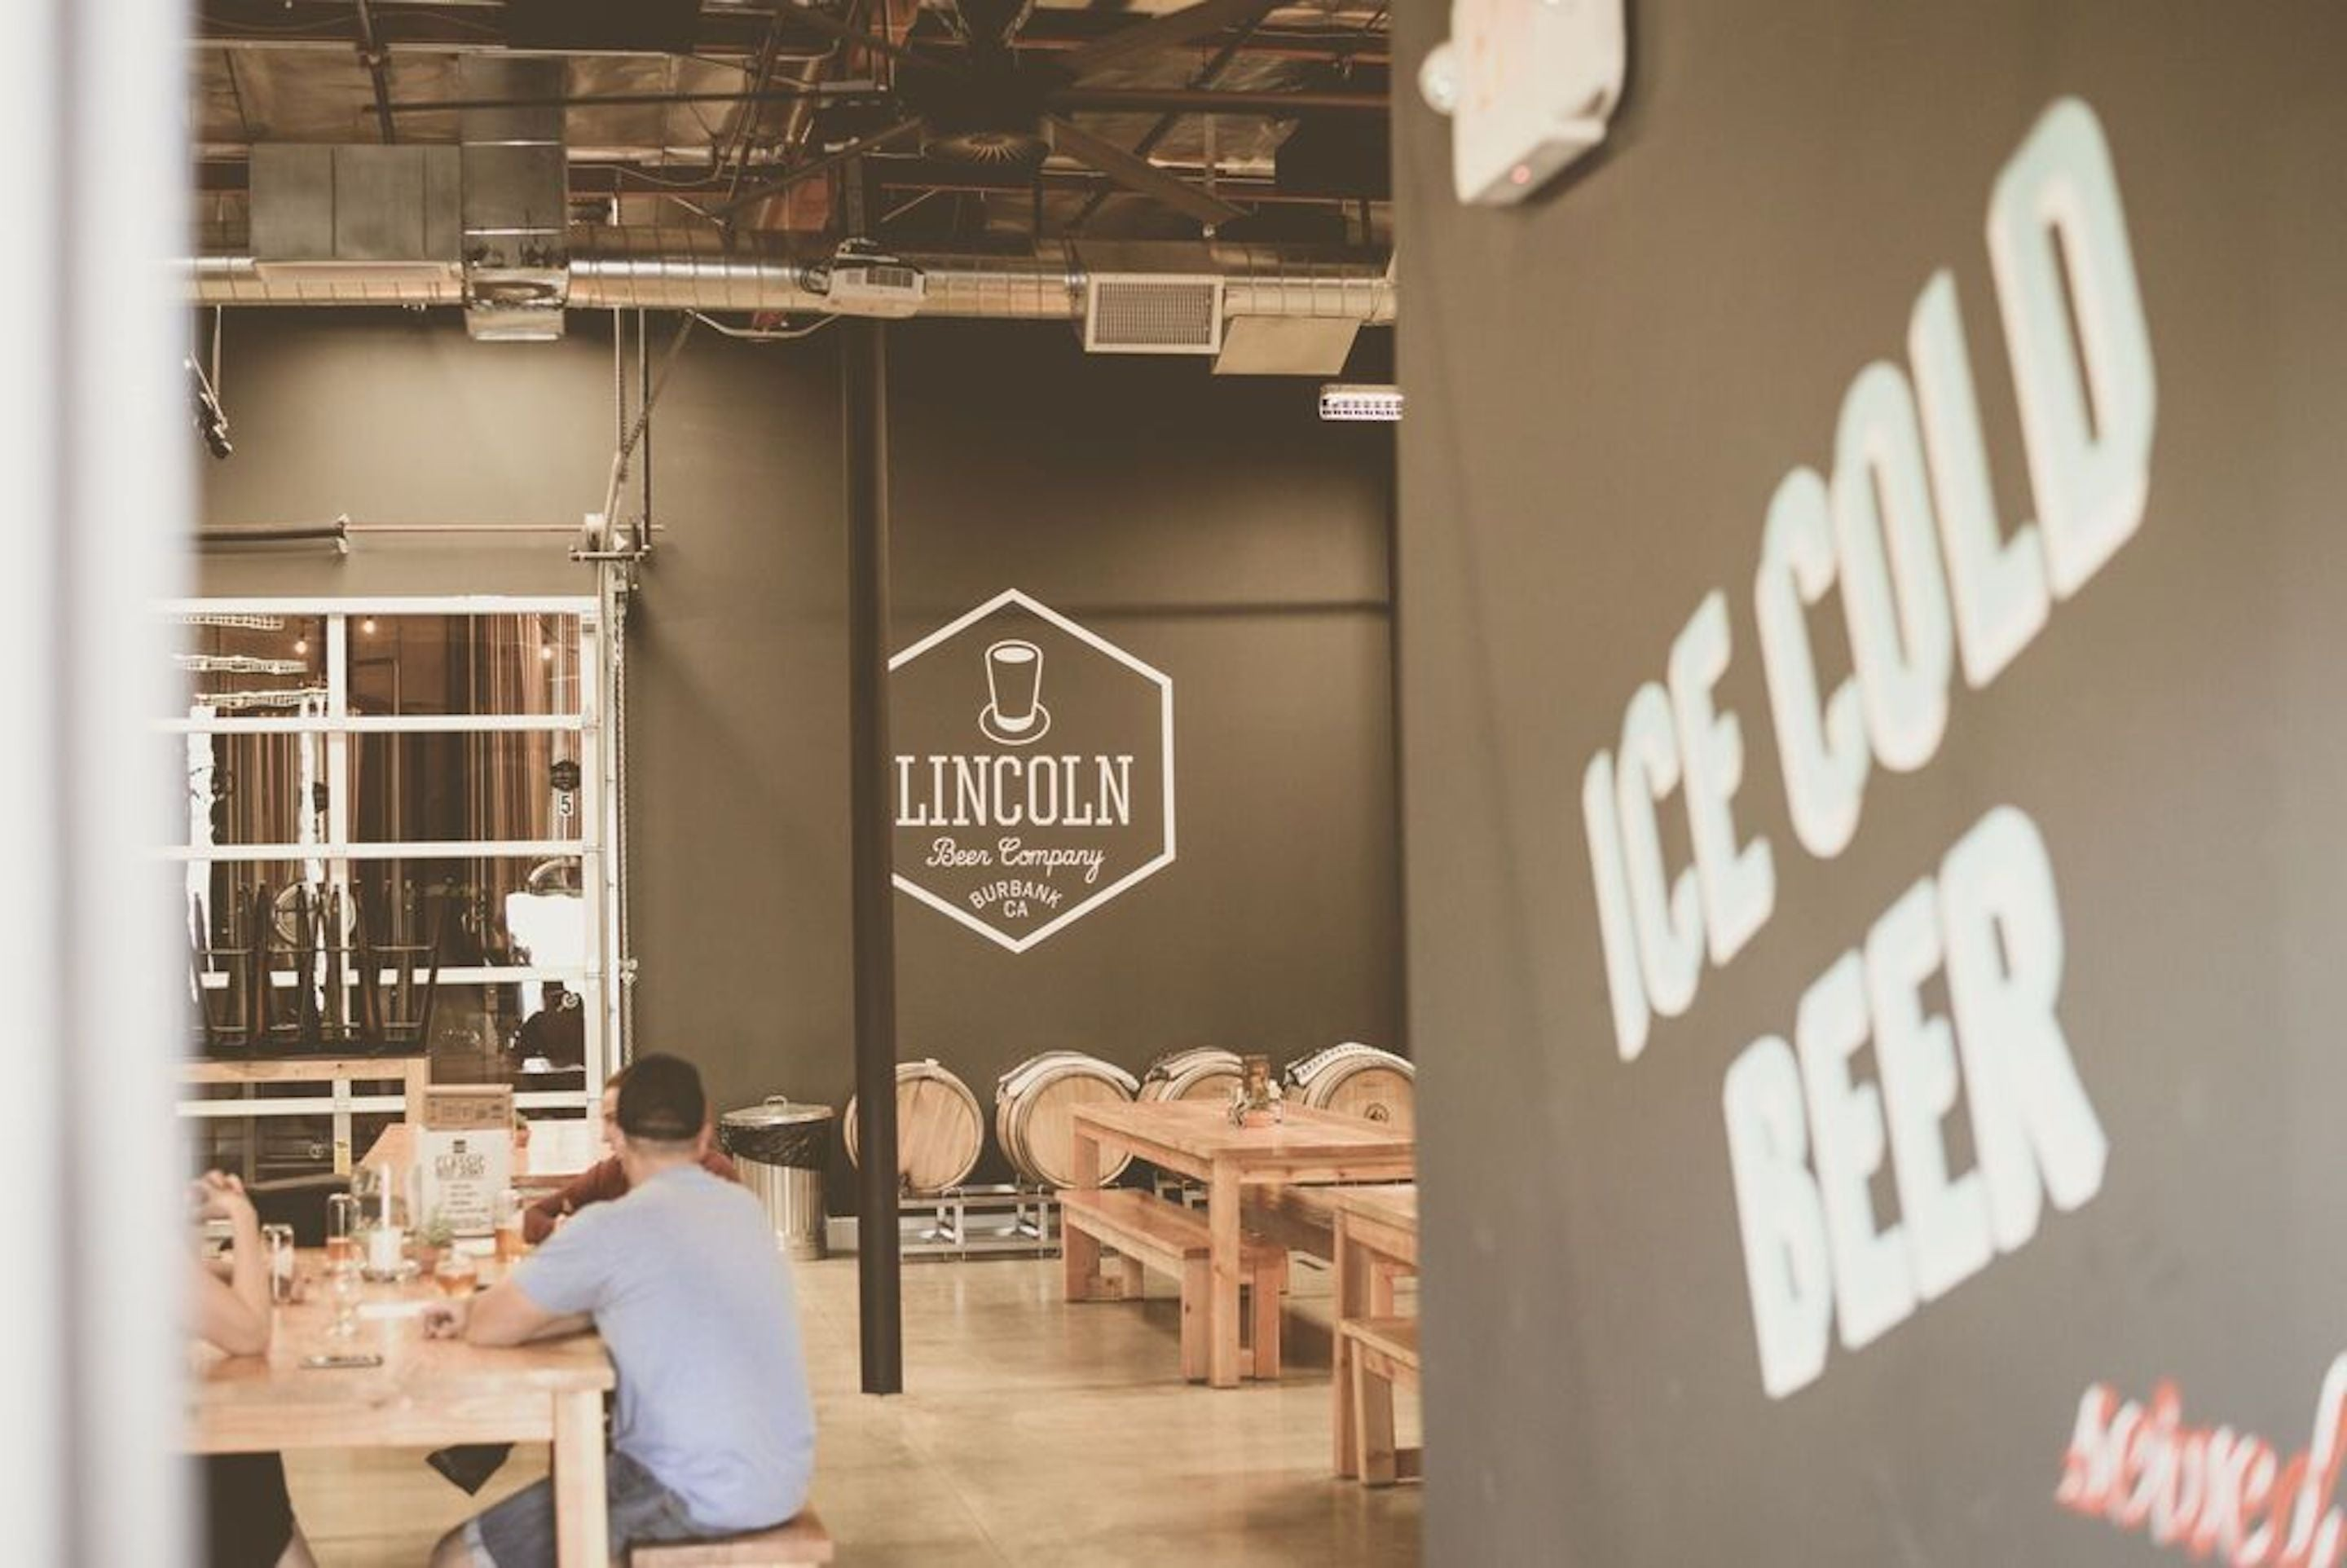 Lincoln Beer Company - Ice Cold Beer